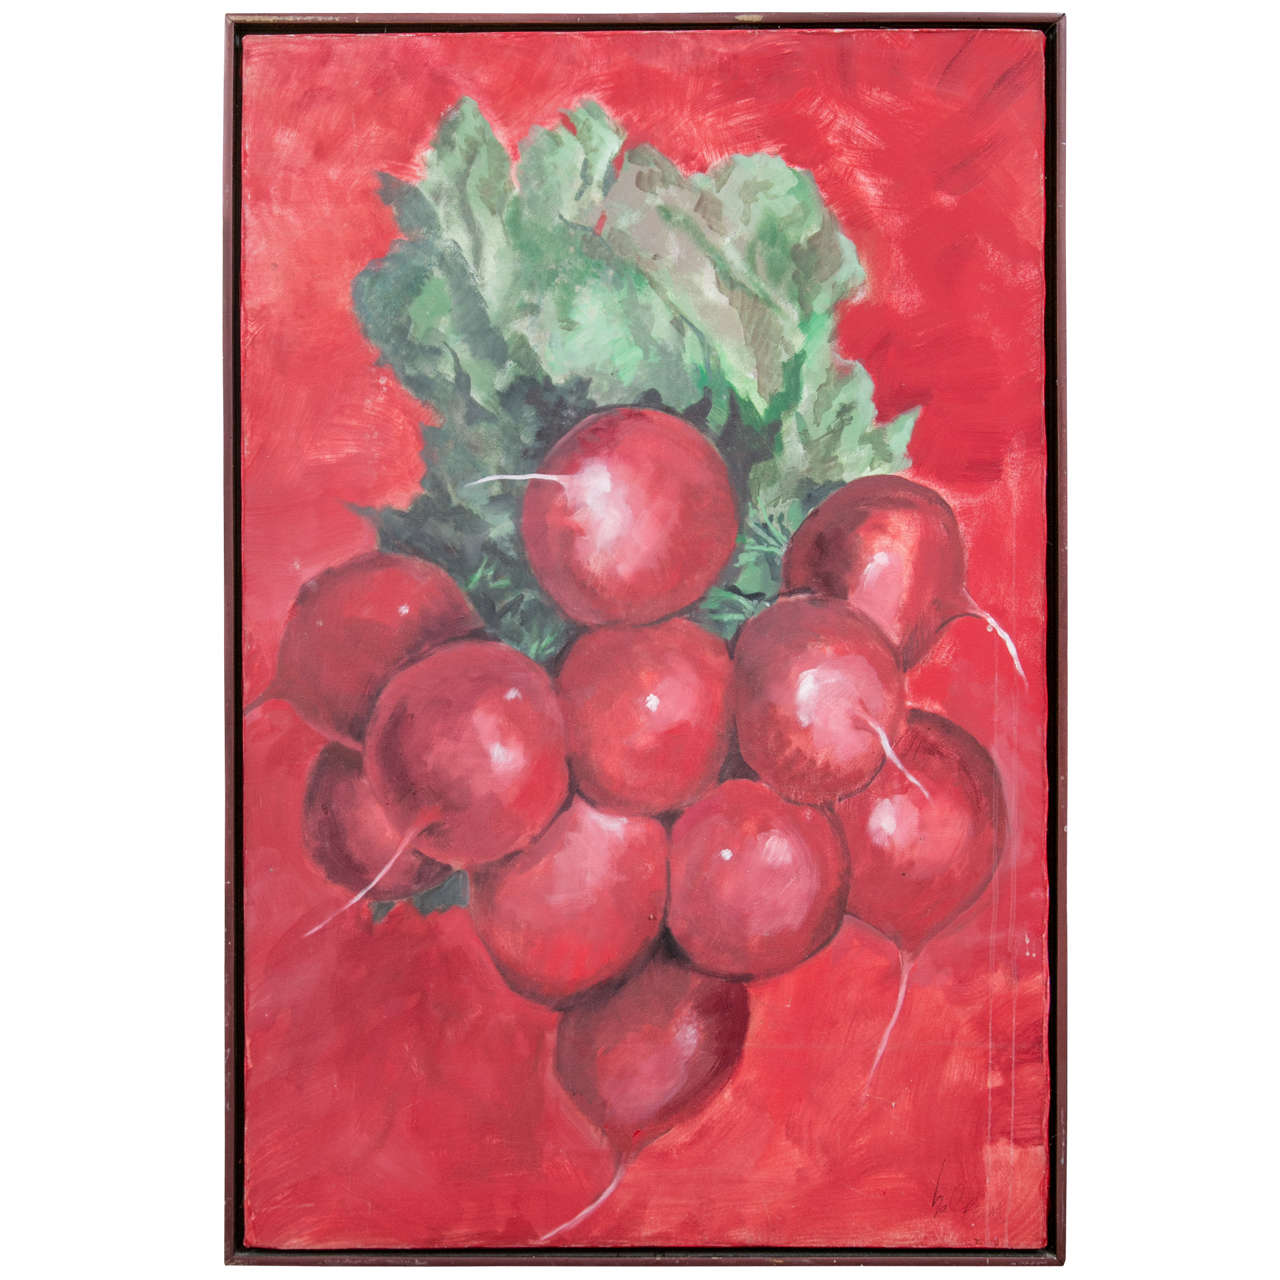 1960s Radishes Painting by David Halpern For Sale